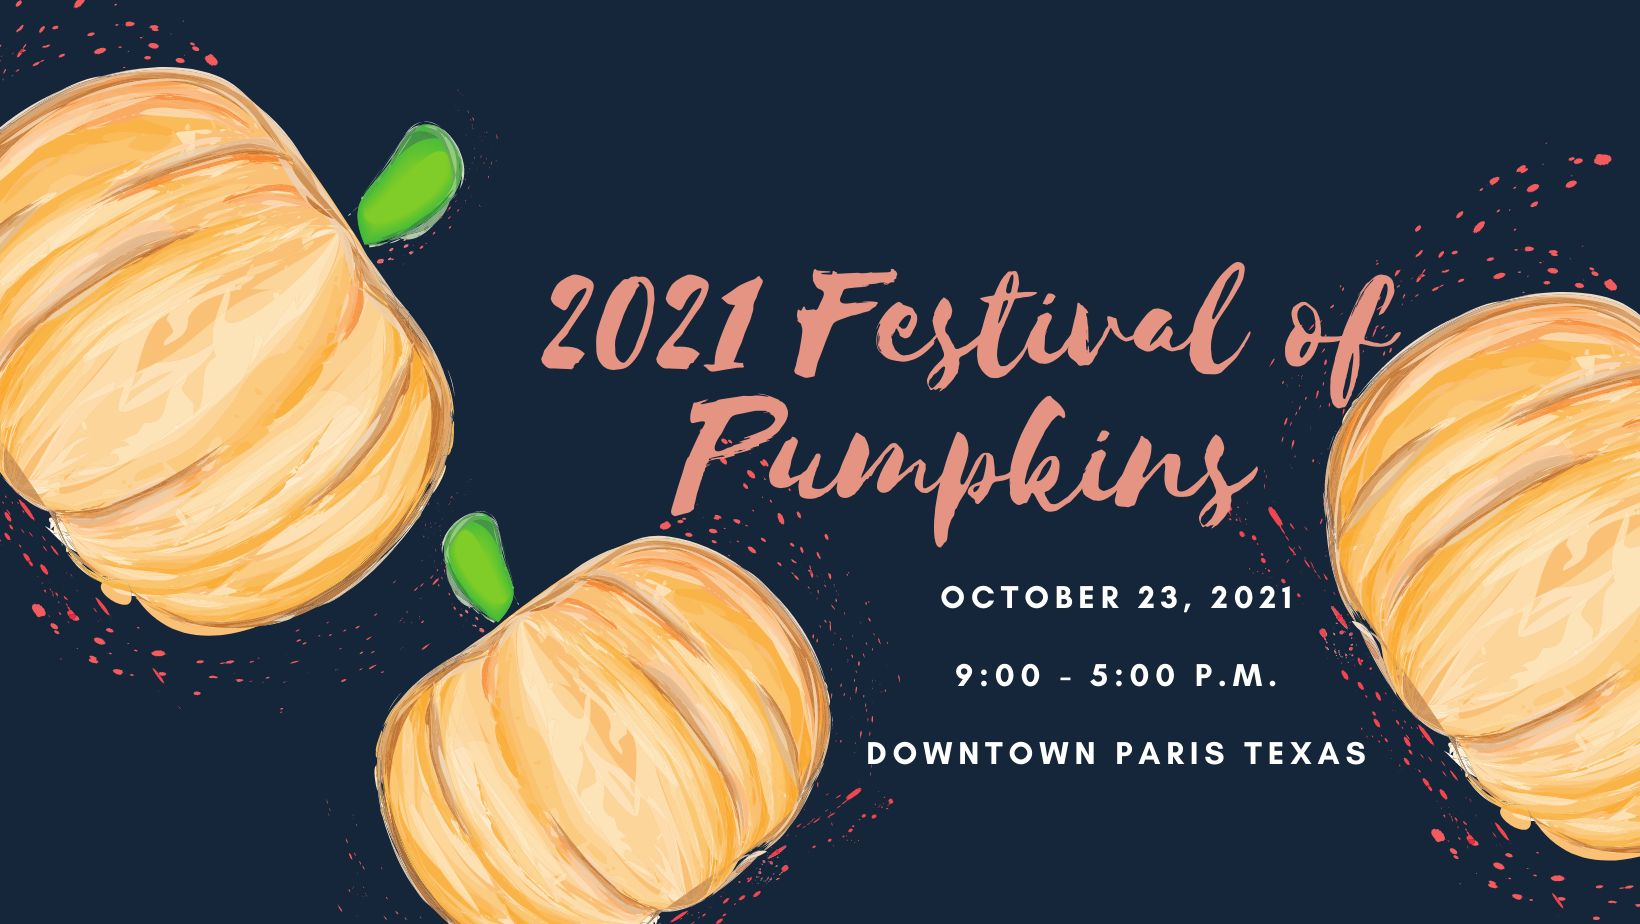 20th annual Festival of Pumpkins